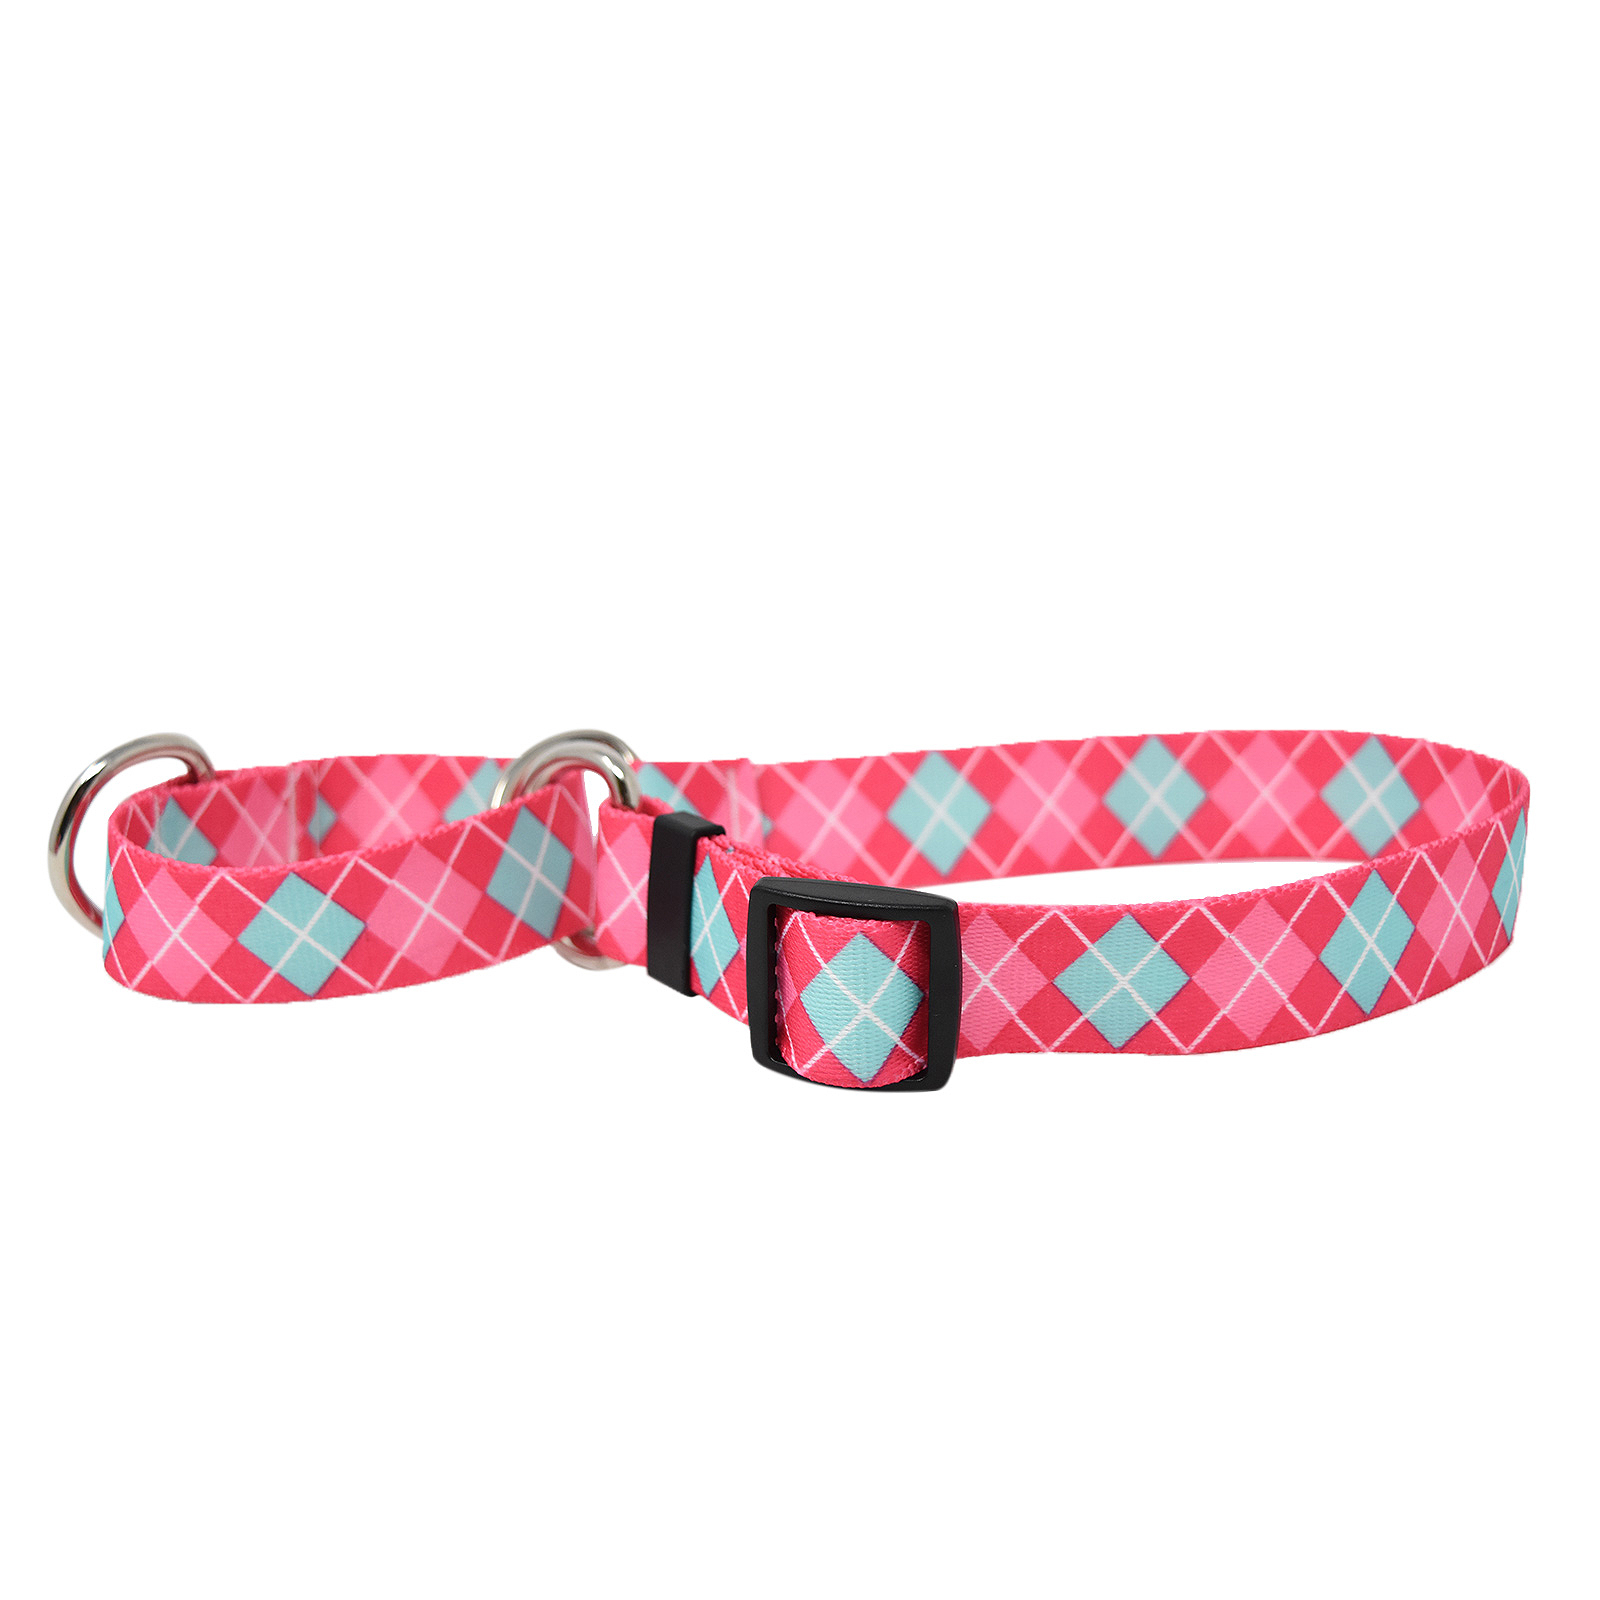 Magenta and Light Blue Argyle Martingale Collar